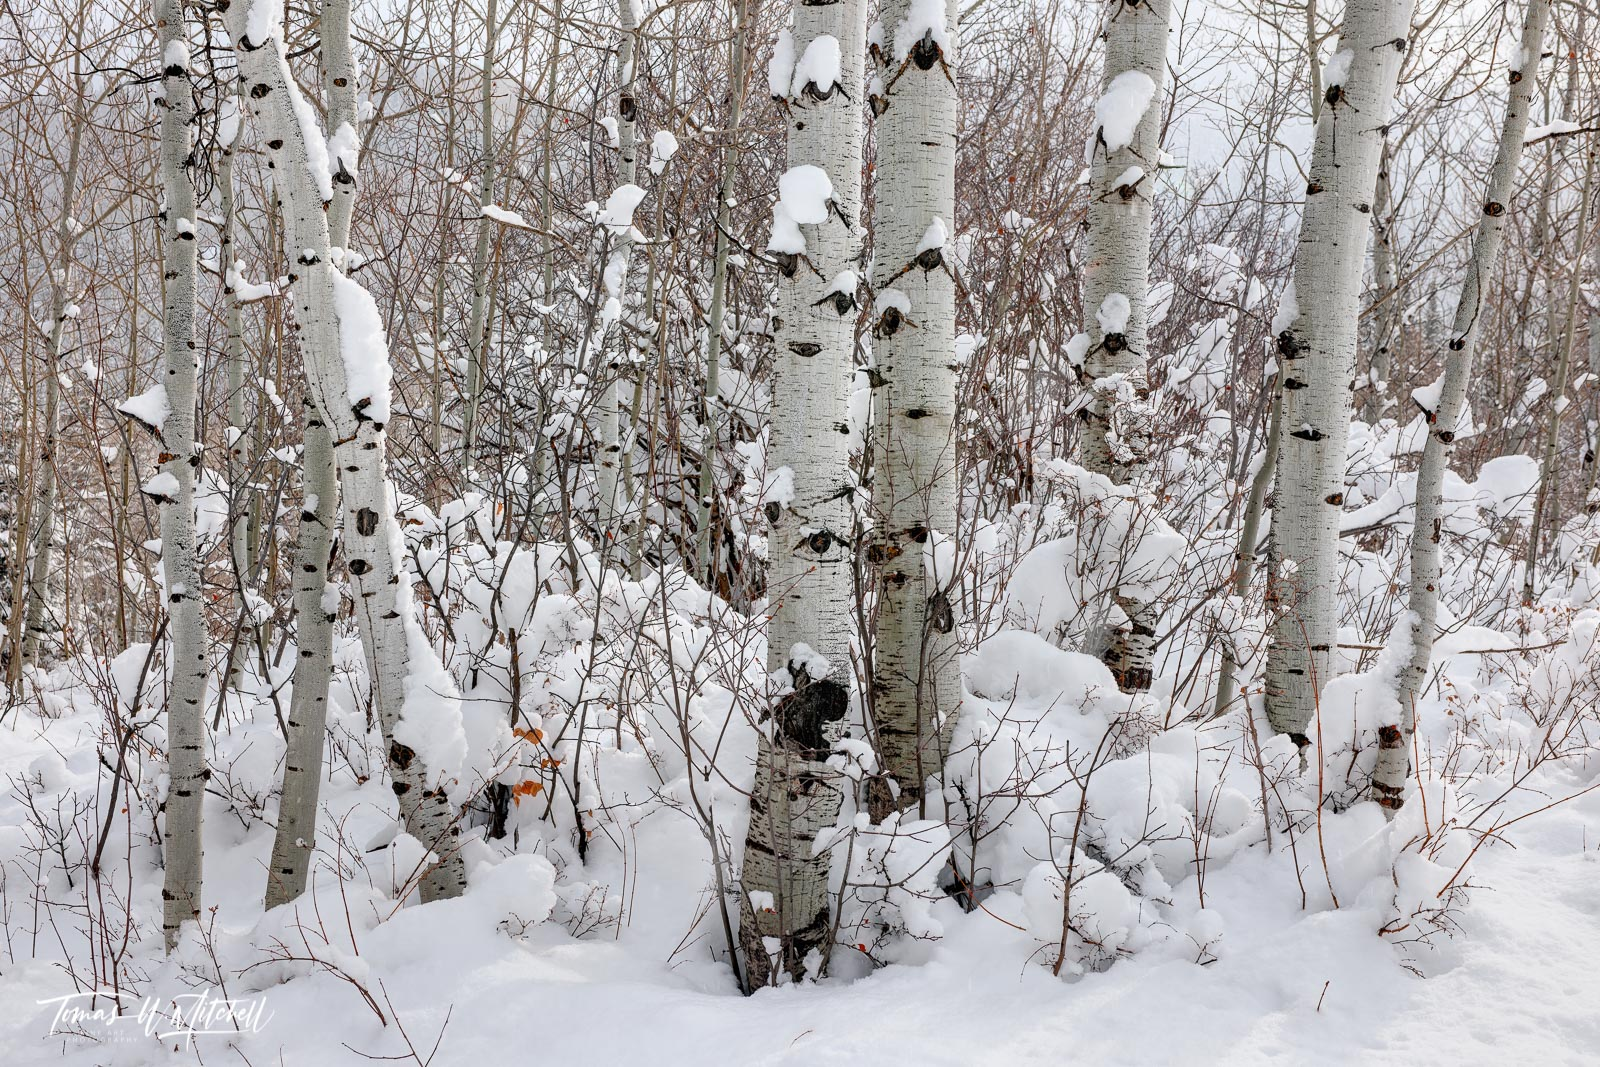 UINTA-WASATCH-CACHE NATIONAL FOREST, UTAH, limited edition, fine art, prints, snow, quaking aspen, trees, wintry, forest, winter, photograph, photo